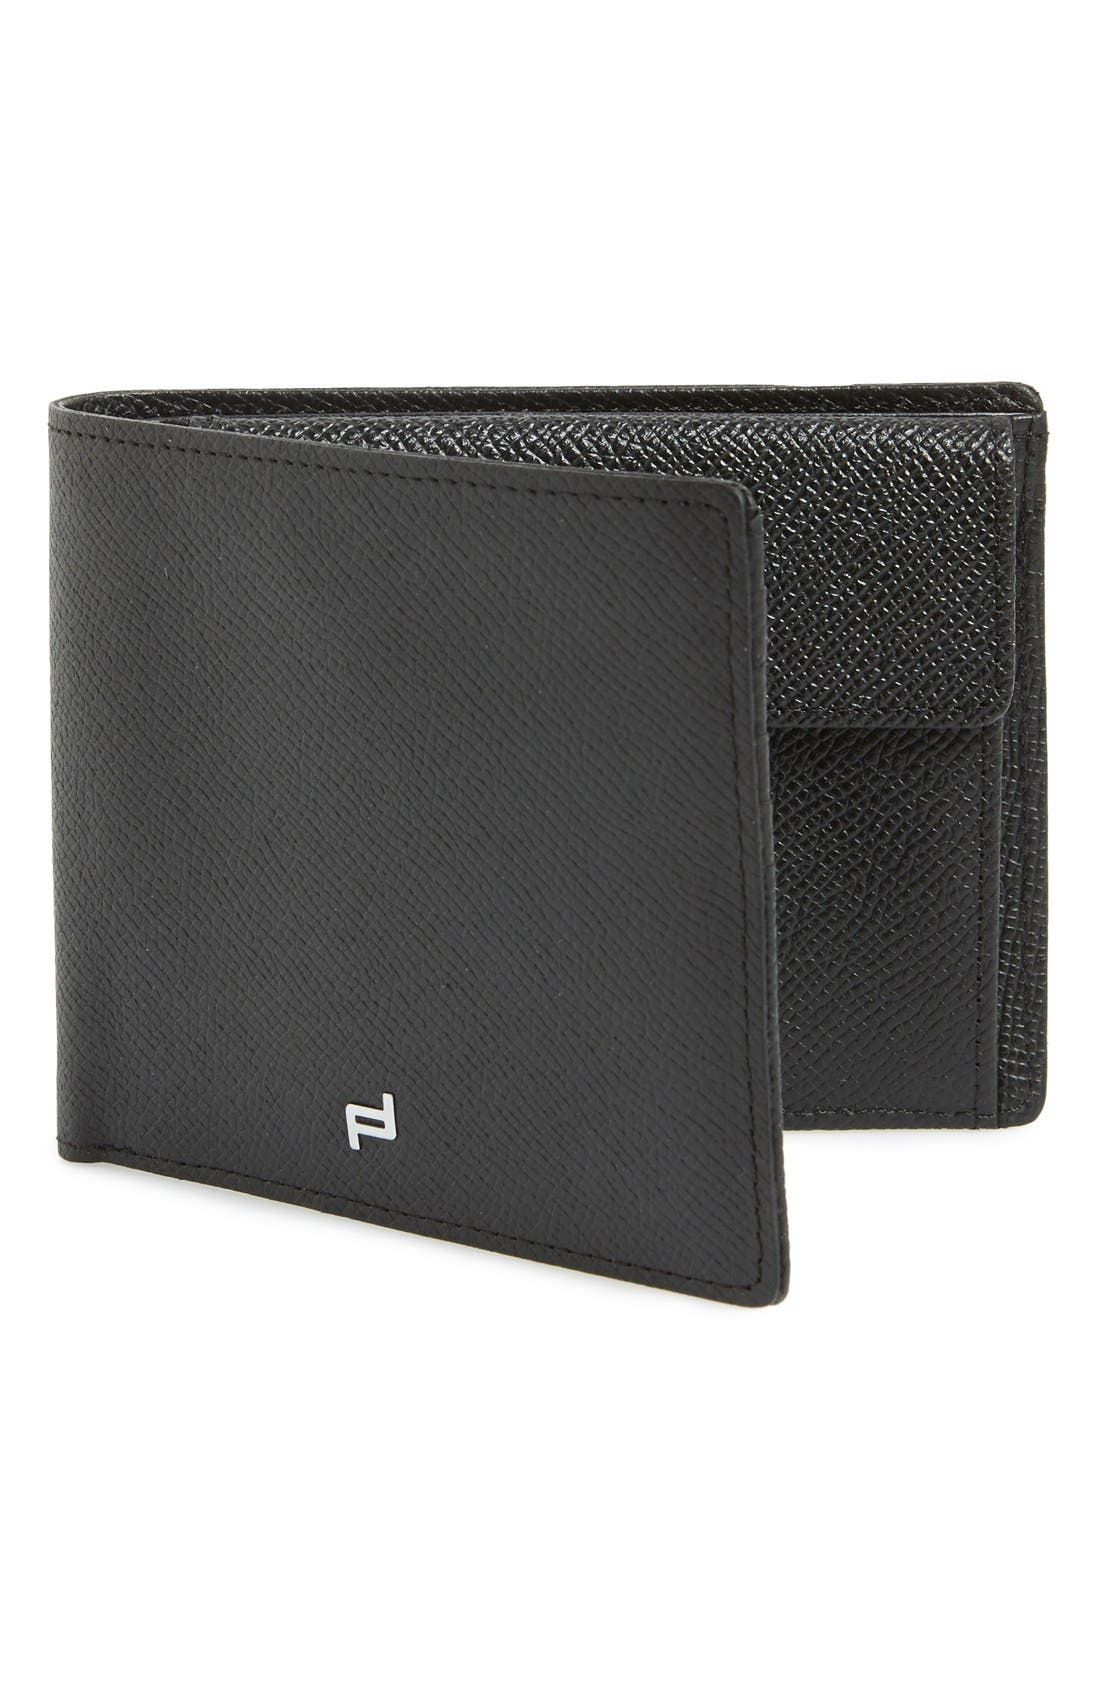 Porsche Design 'French Classic 3.0' Leather Billfold Wallet